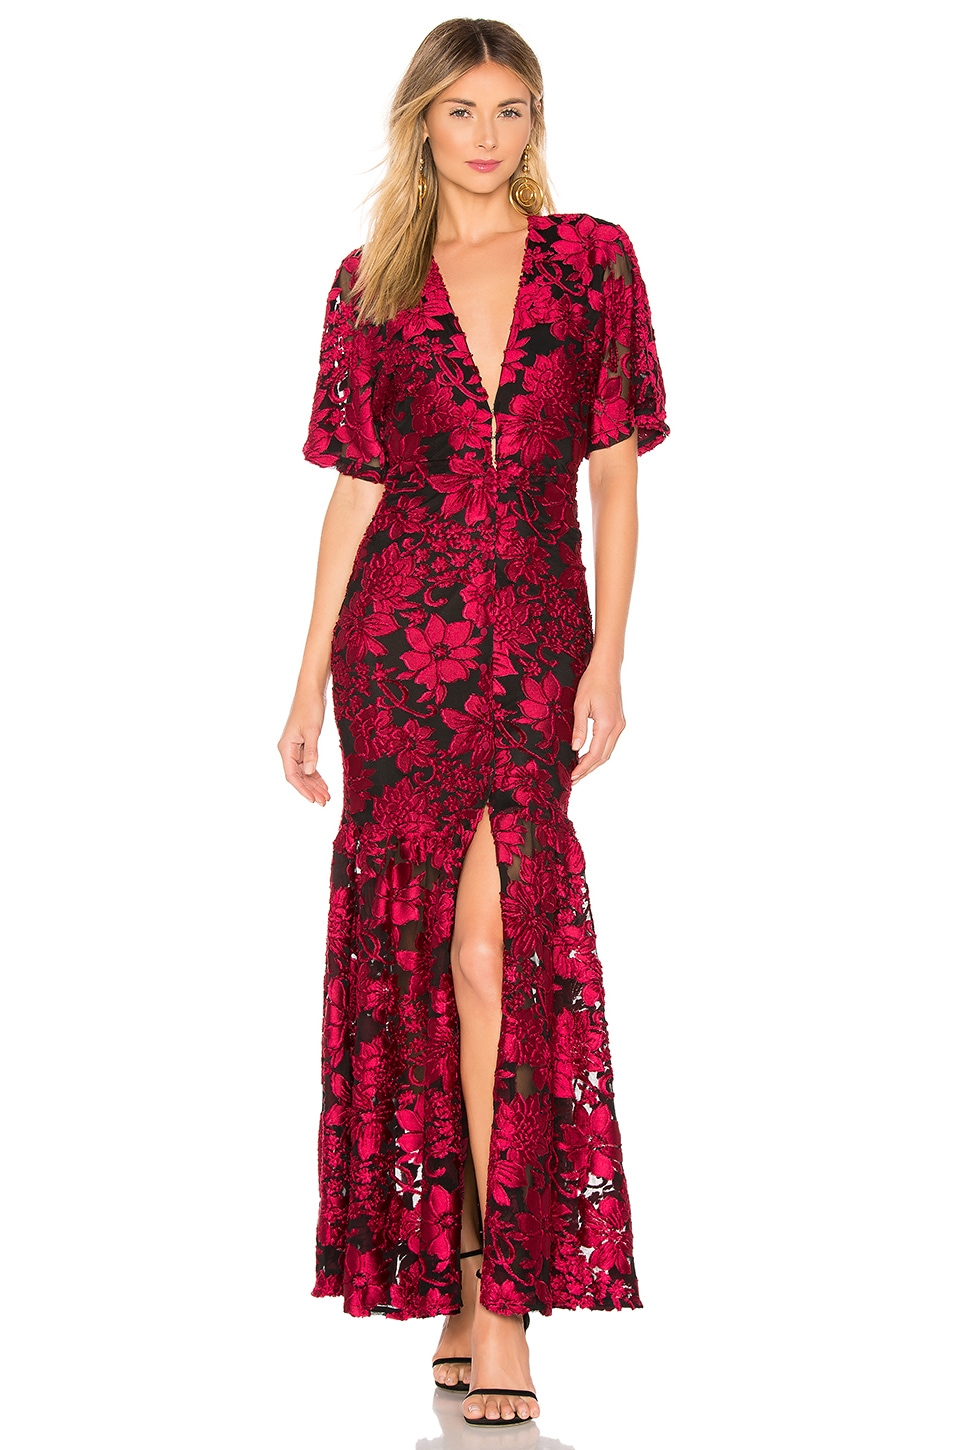 House of Harlow 1960 x REVOLVE Savana Dress in Black & Red